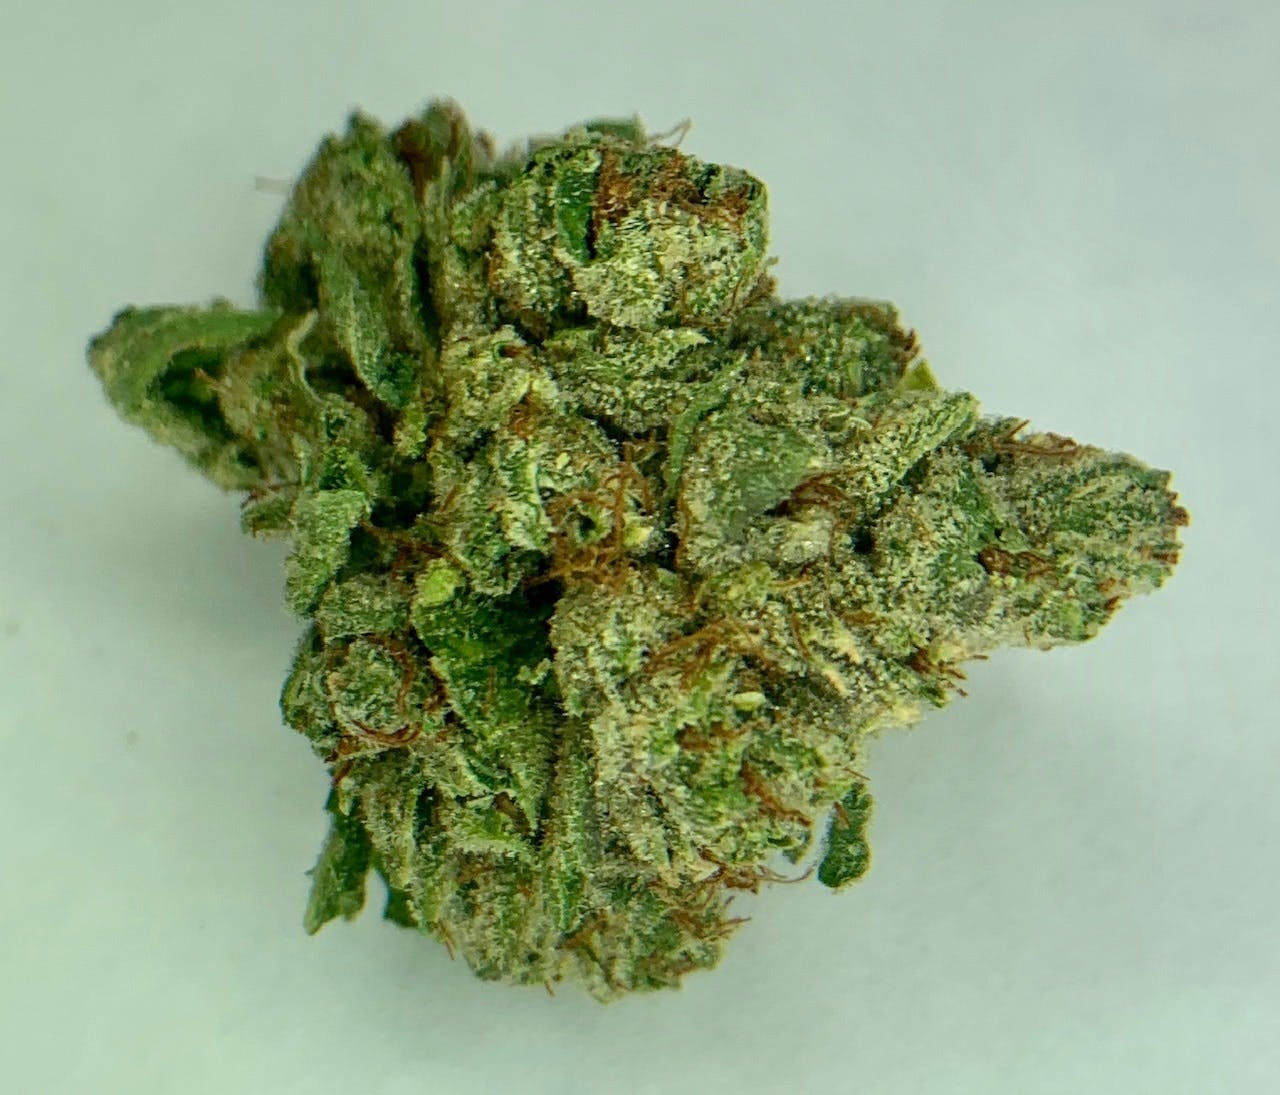 marijuana-dispensaries-549-n-western-ave-los-angeles-exclusive-el-chapo-og